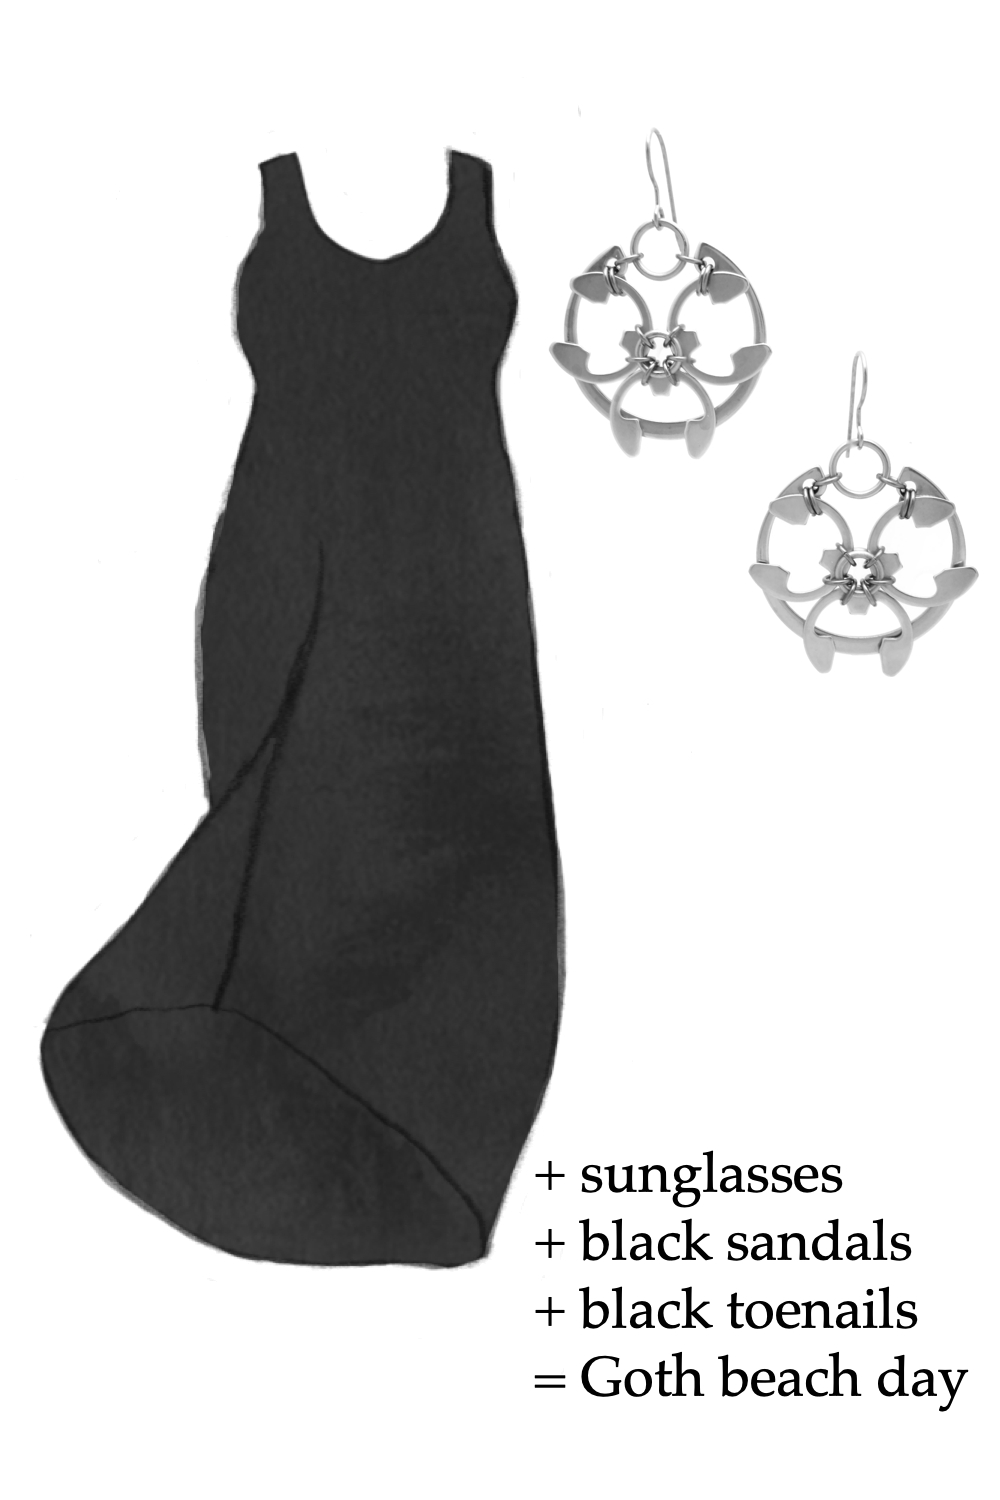 Outfit idea featuring a style sketch of the Athena Dress by Universal Standard in black and the Rose Window Earrings by Wraptillion. Text on image reads: + sunglasses + black sandals + black toenails = Goth beach day.